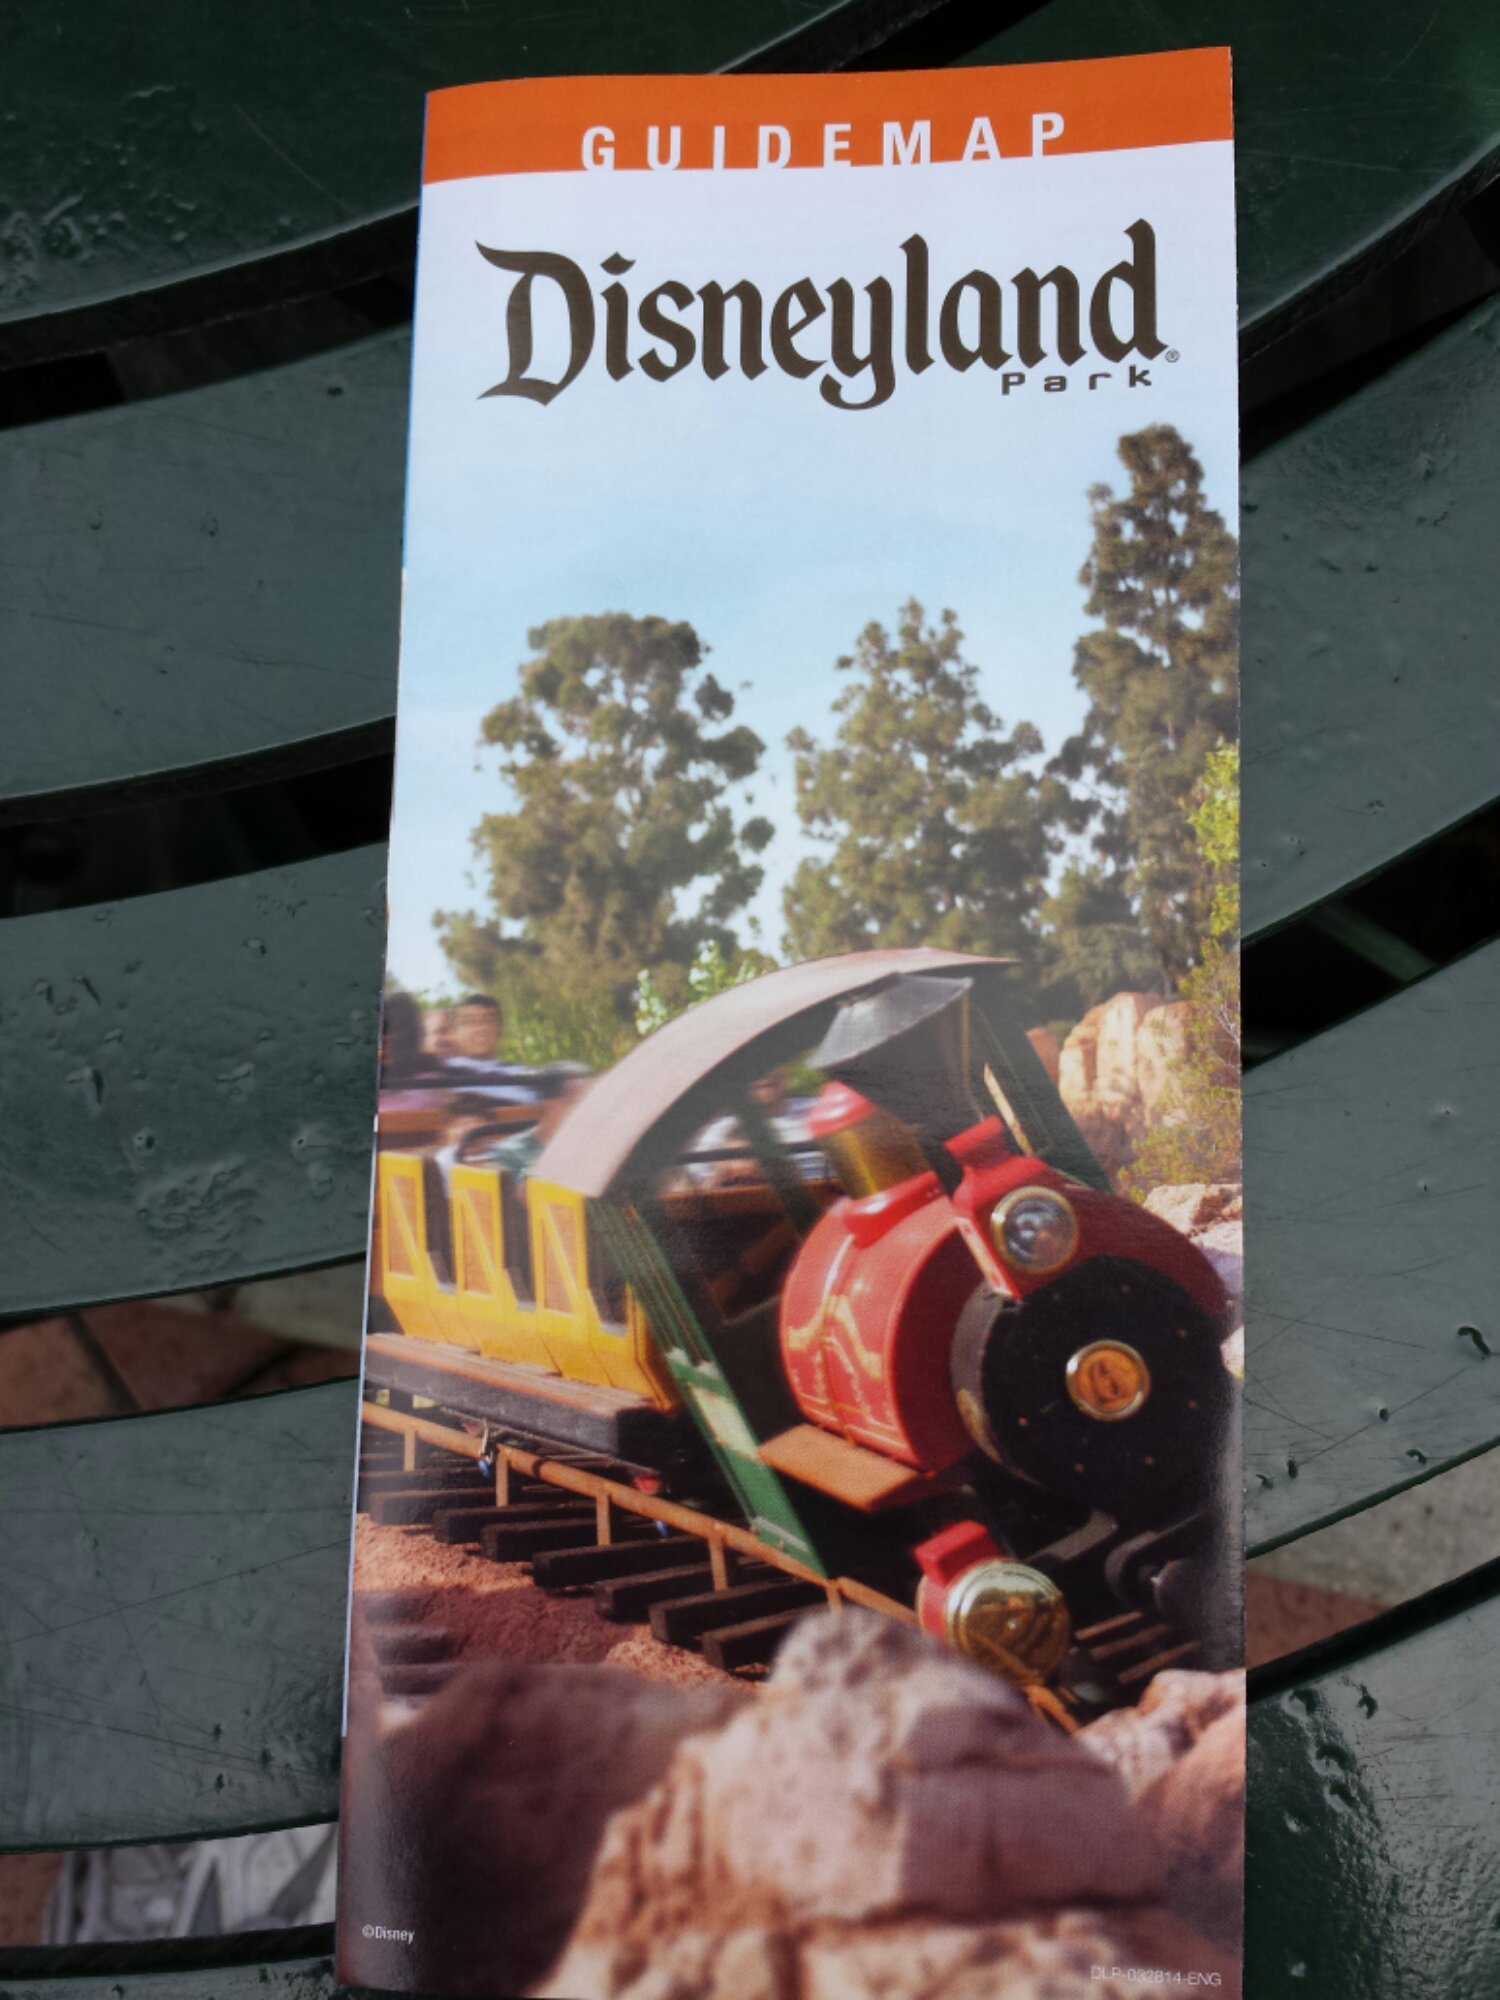 New guidemaps this week featuring Big Thunder